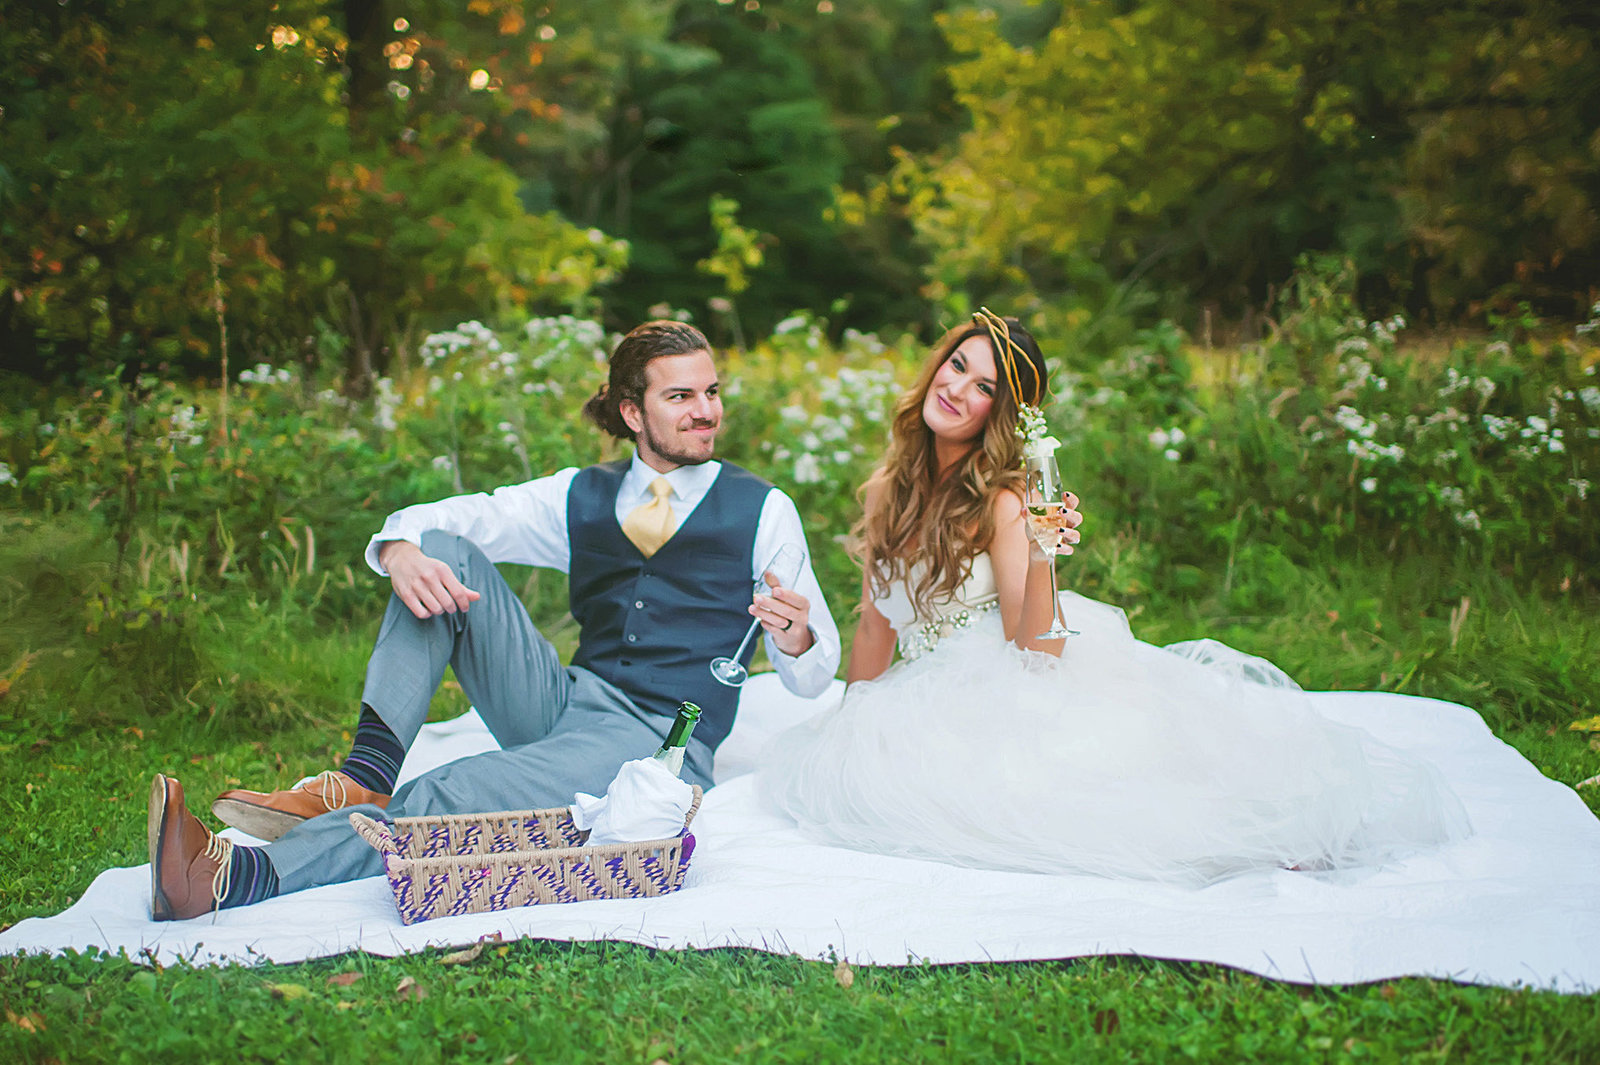 Illinois_wedding_photographer_019